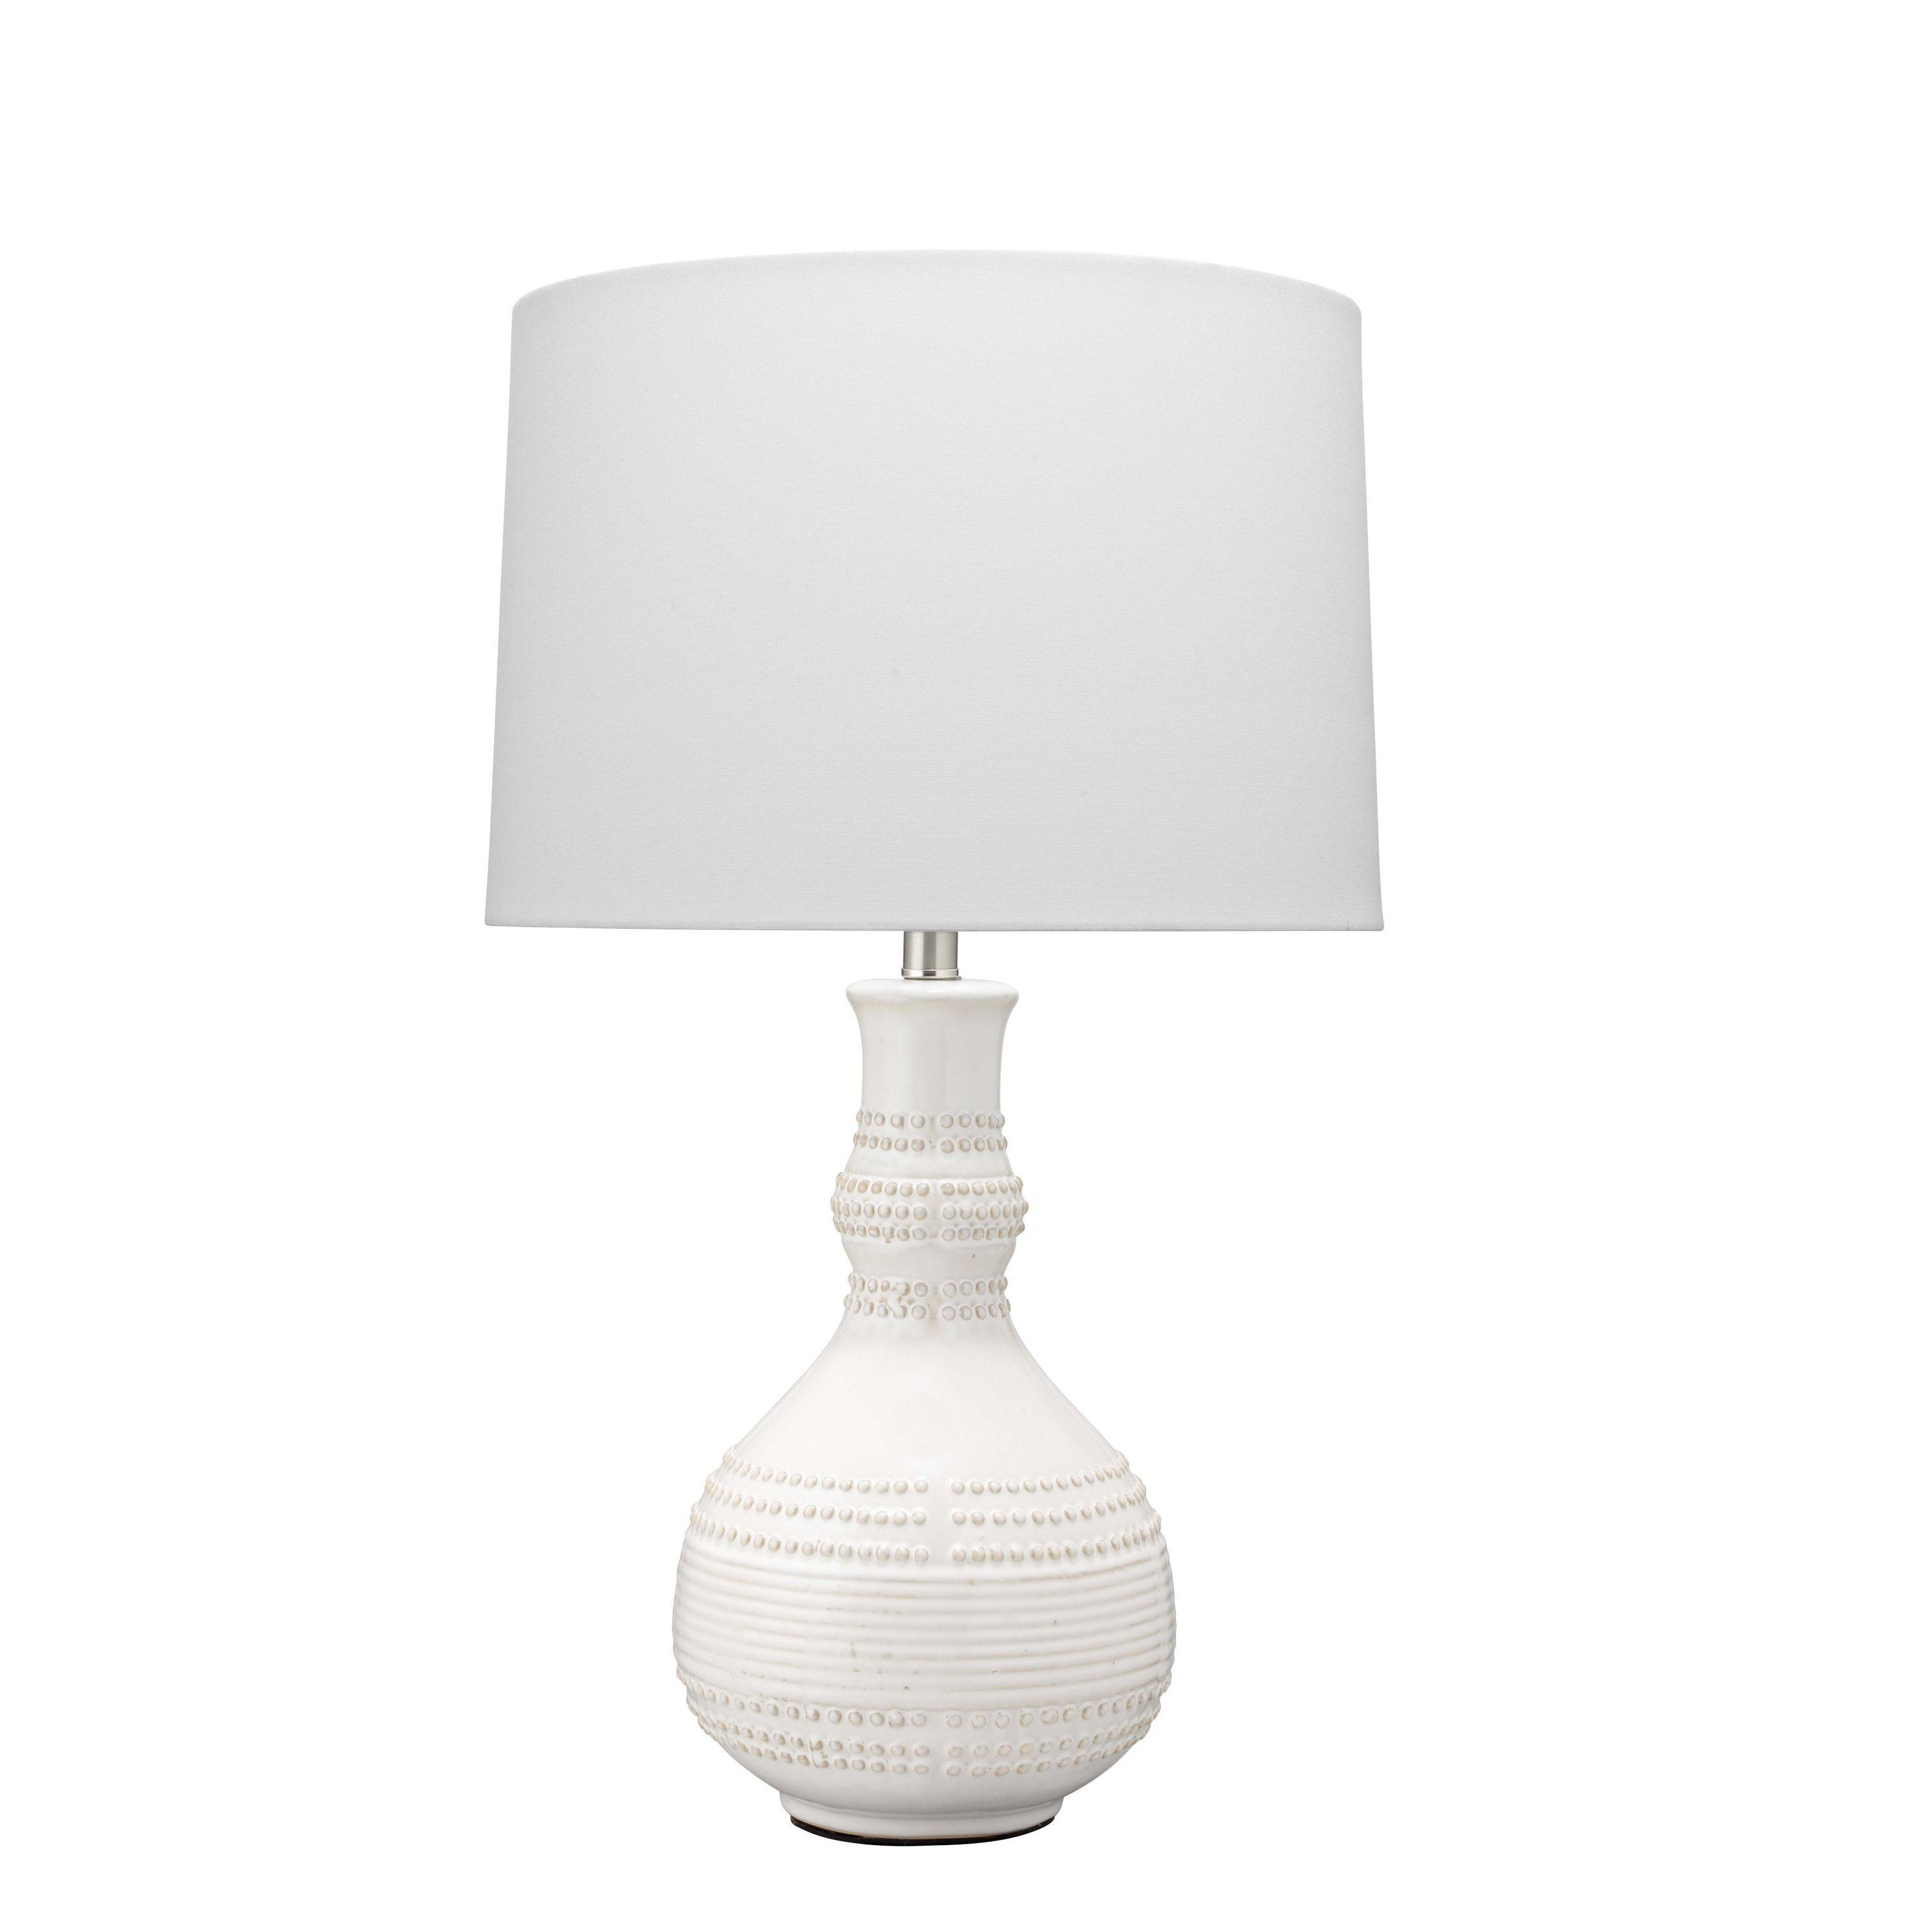 Droplet Table Lamp in White Ceramic